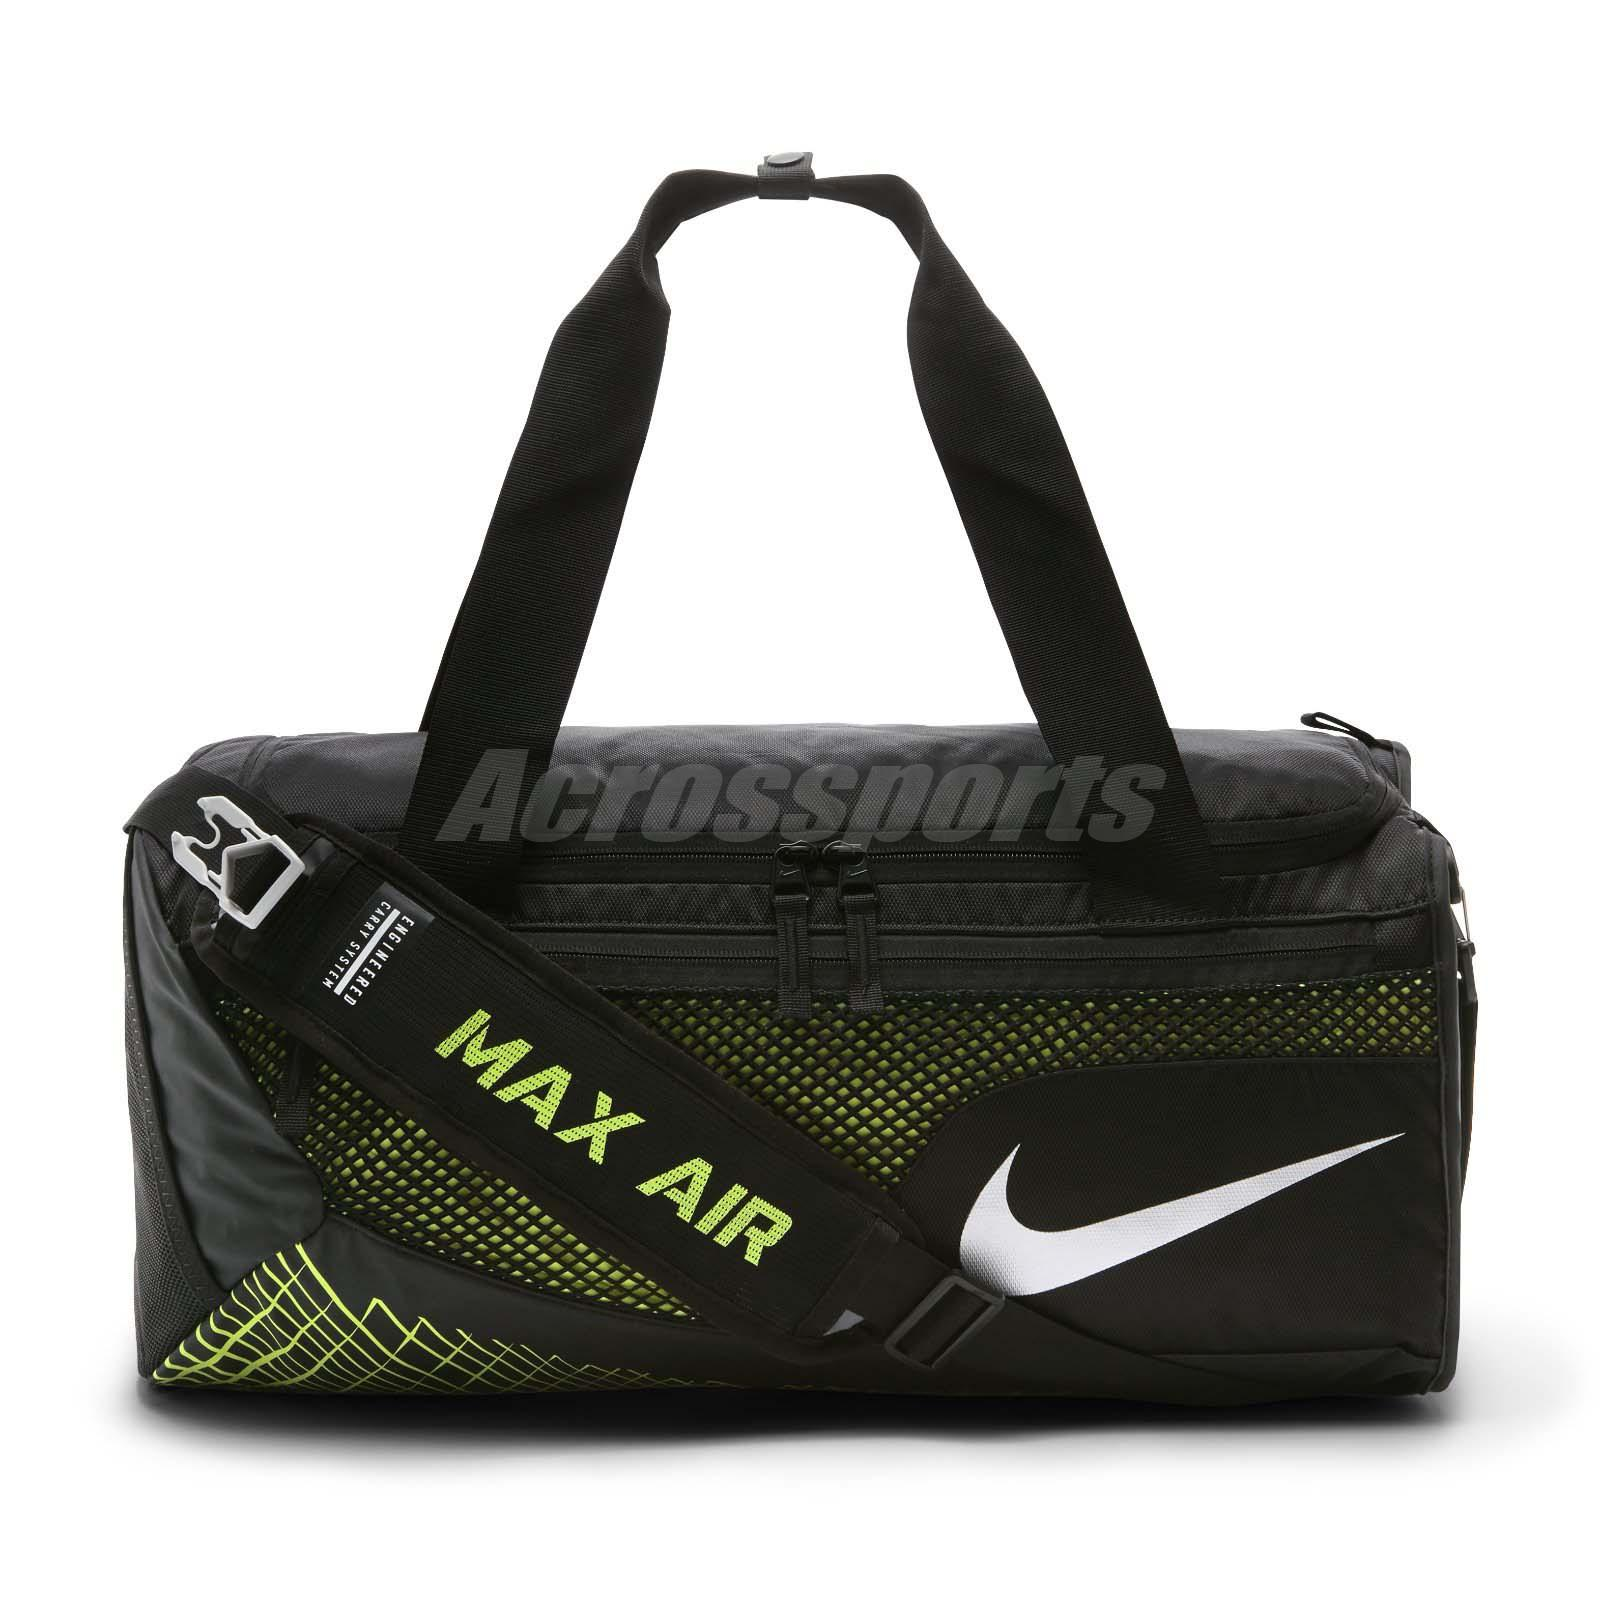 Nike Vapor Max Air Training Duffel Bag Black Volt Gym Training Sports  BA5478-010 8dde556f971bb